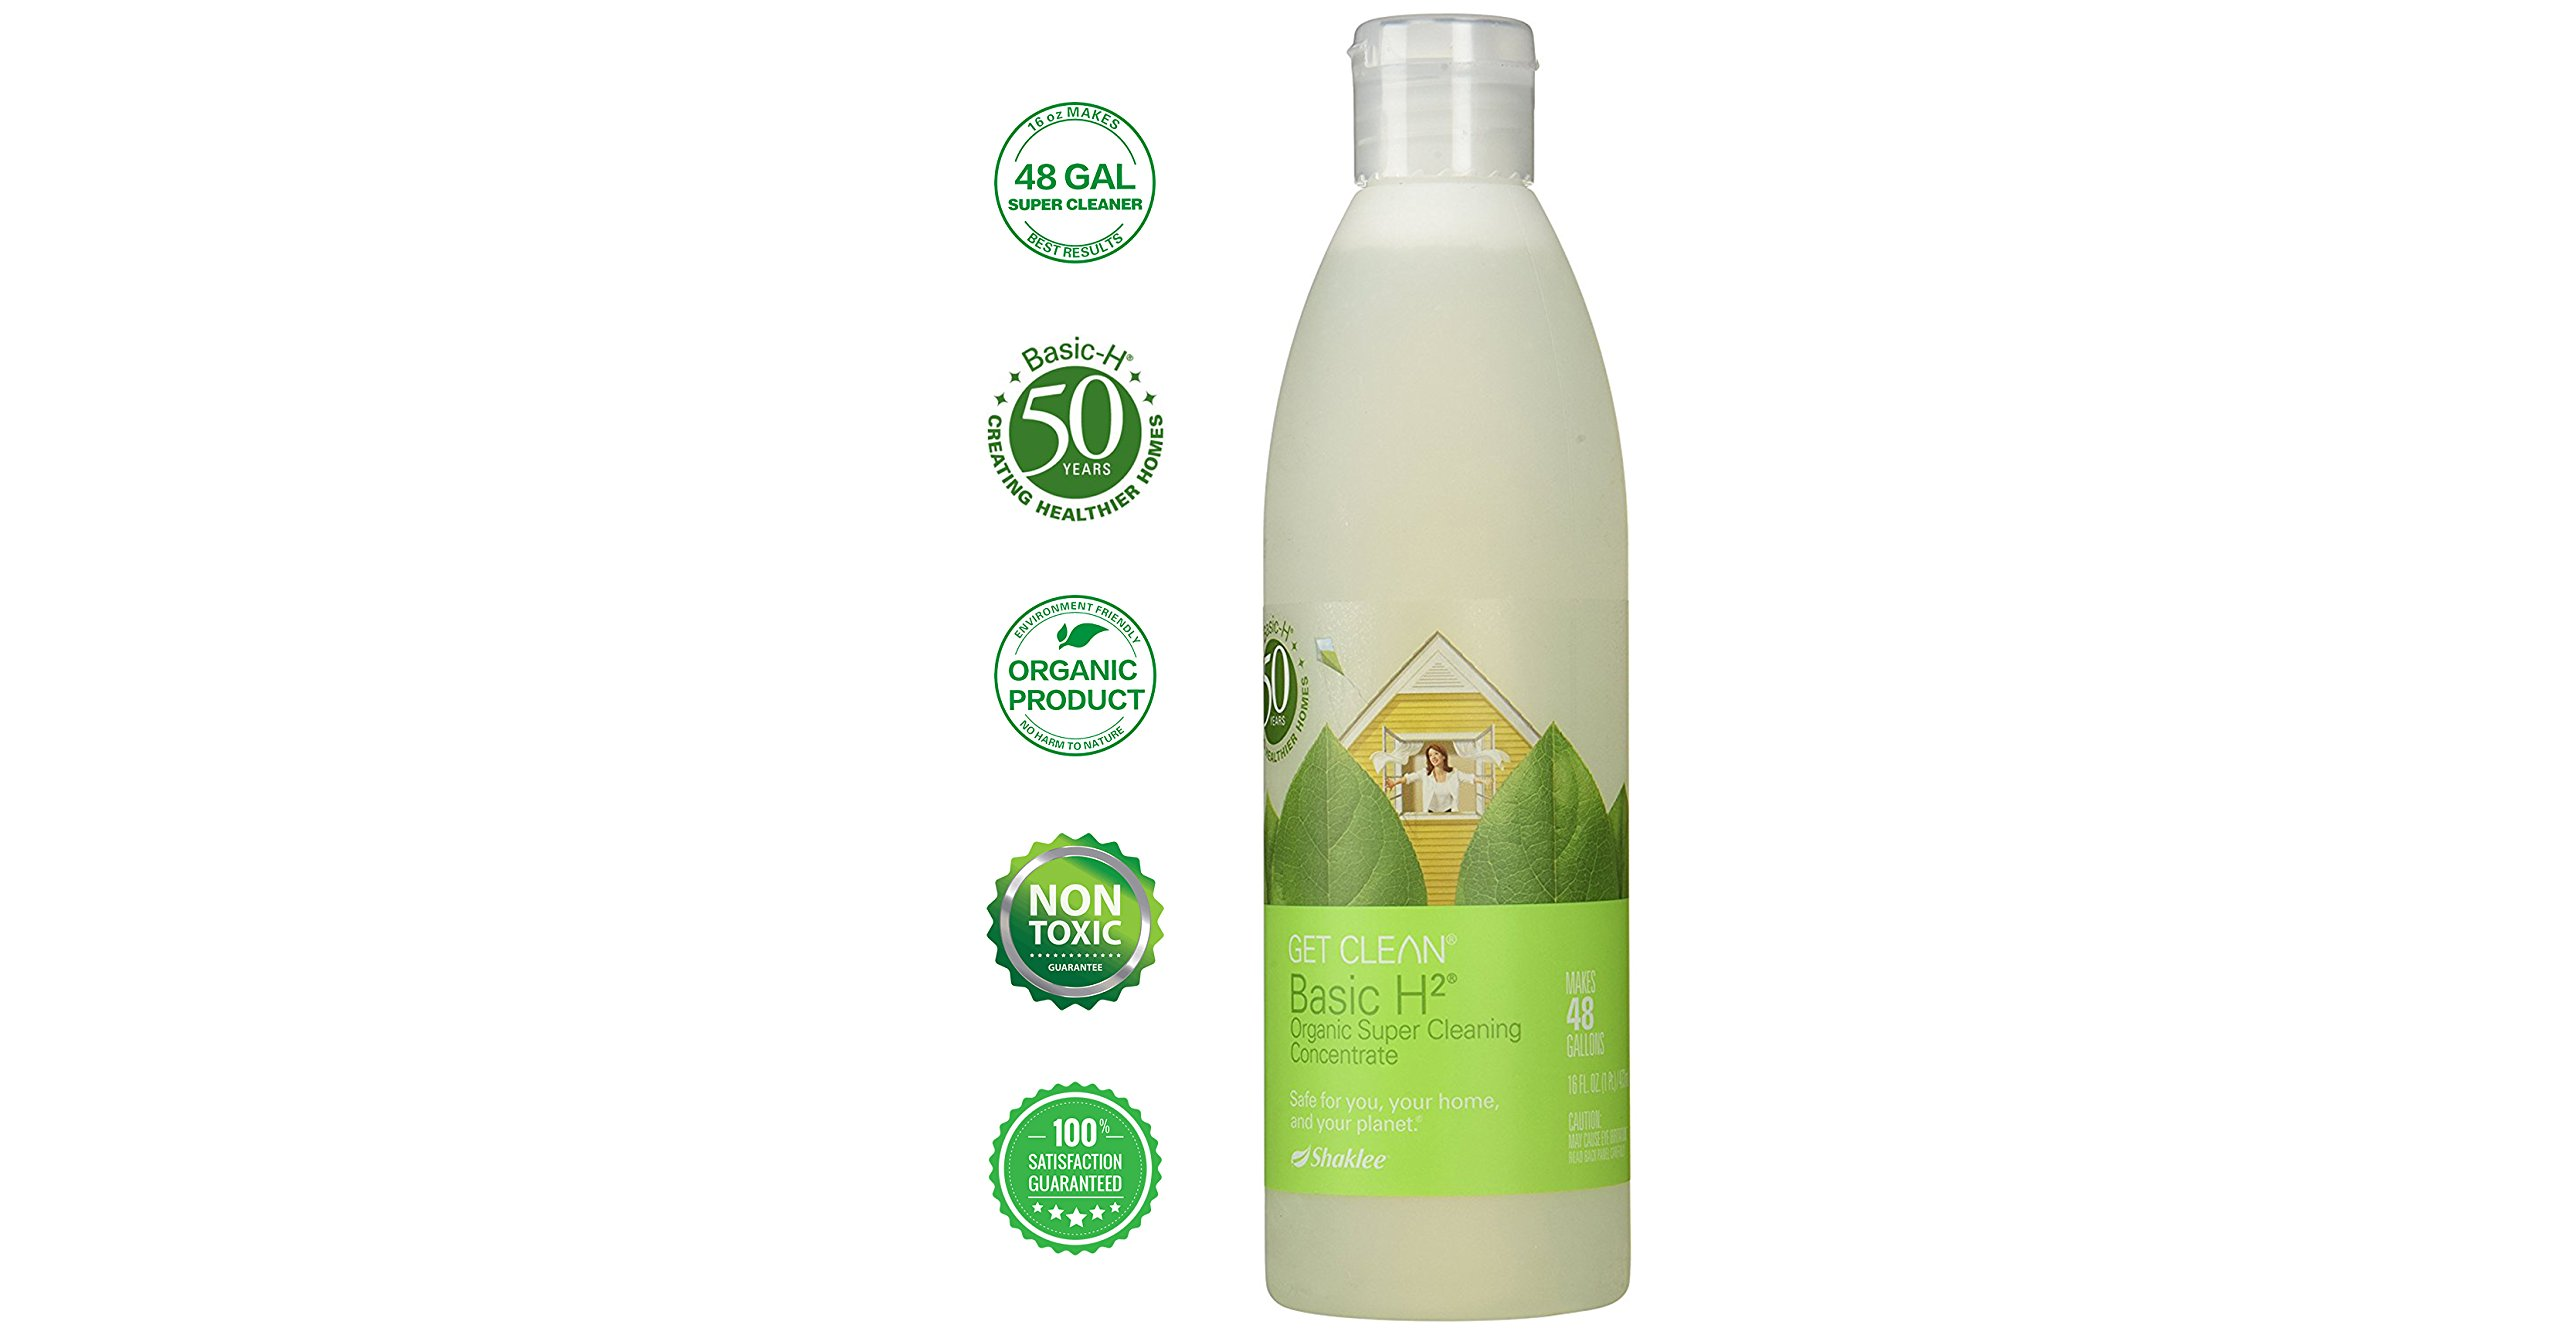 Basic H2 Organic All Purpose Cleaner Concentrate 16 oz Makes 48 Gallons – Best Results – Kids & Pets Safe